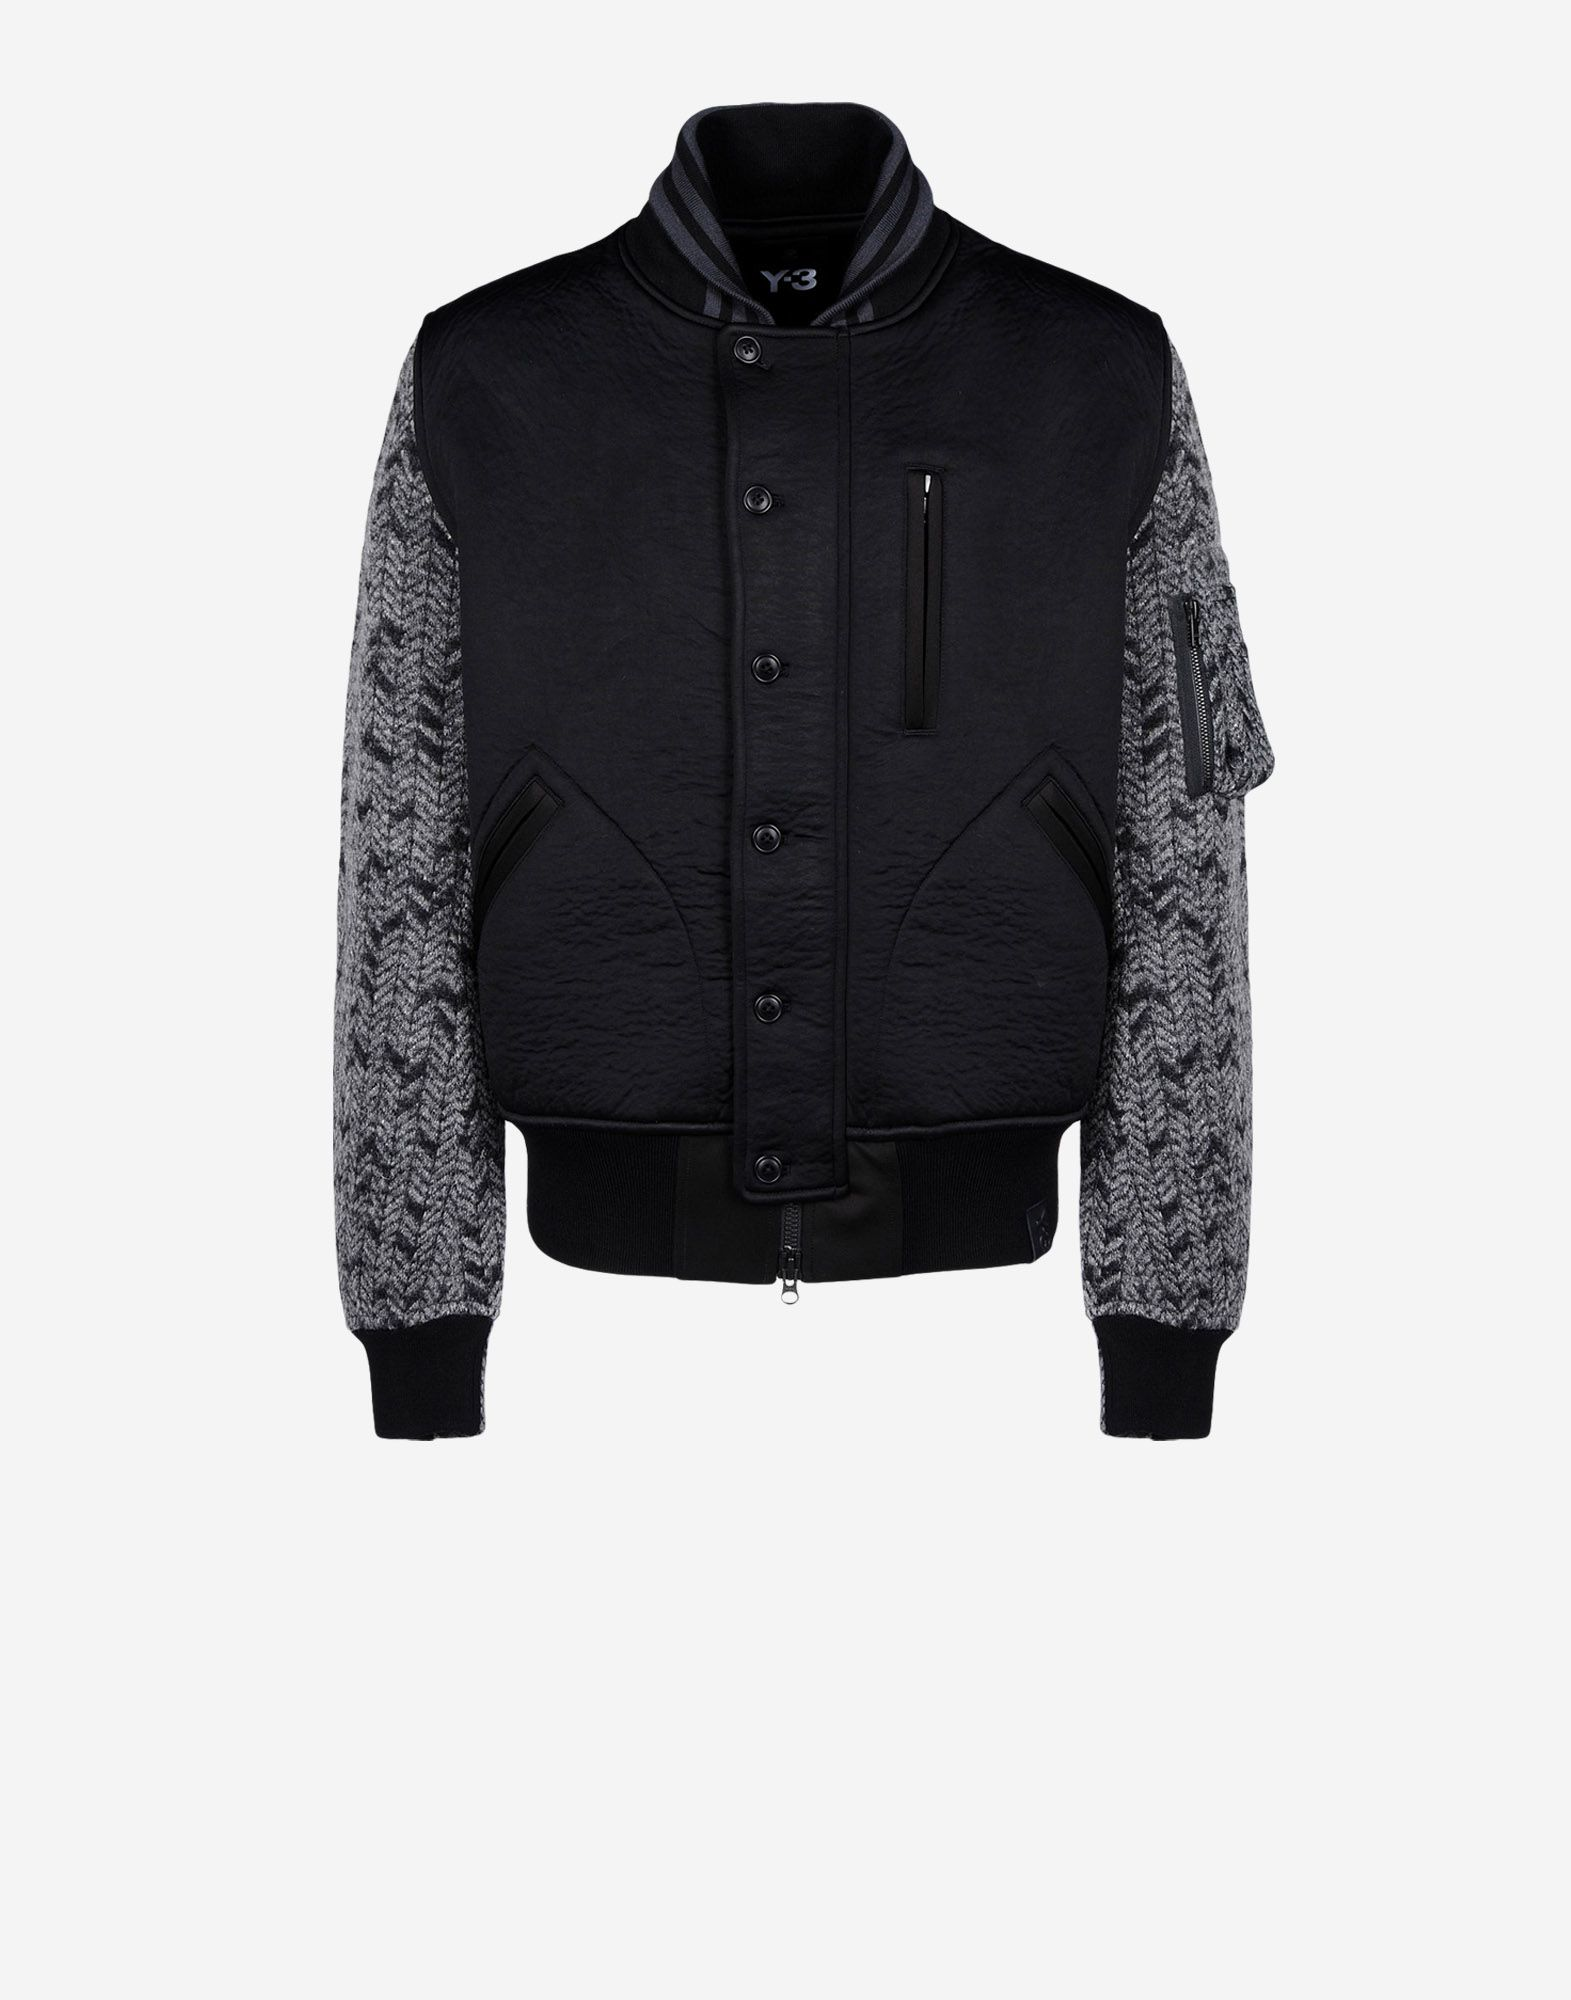 Y 3 3L WOOL FLIGHT JACKET Jackets for Men | Adidas Y-3 Official Store